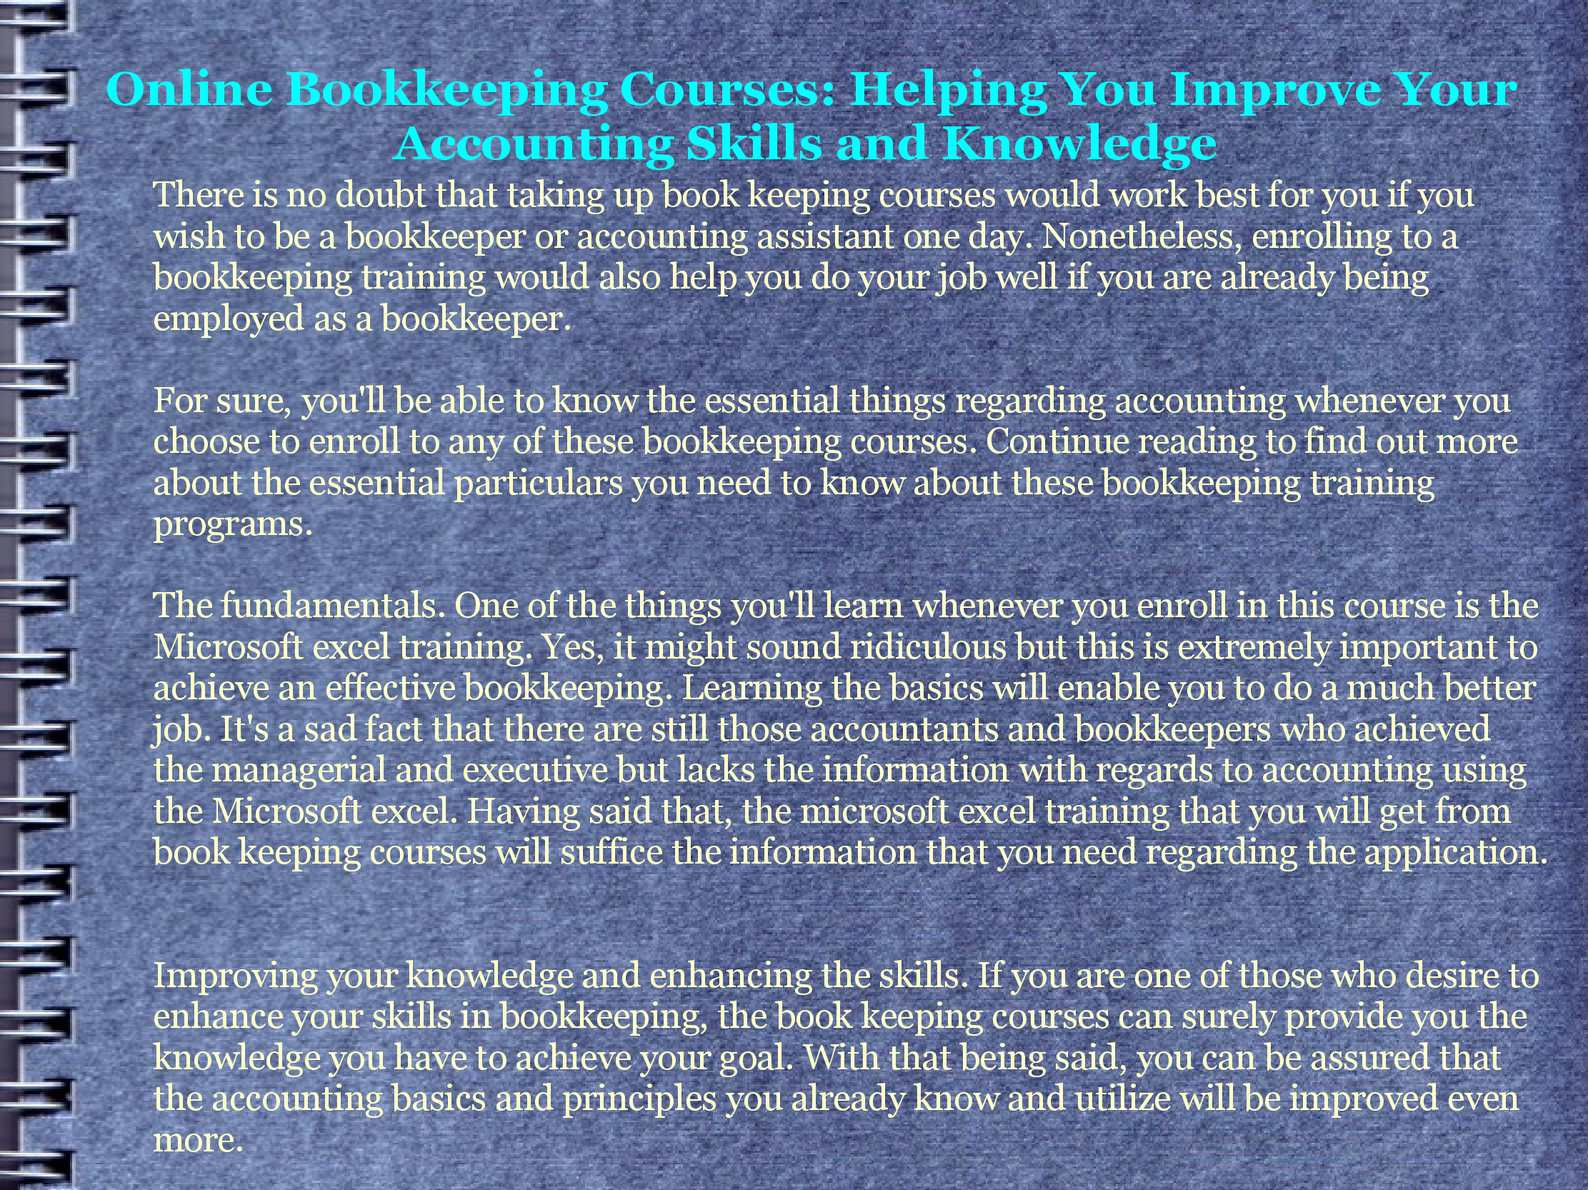 Calamo Online Bookkeeping Courses Helping You Improve Your